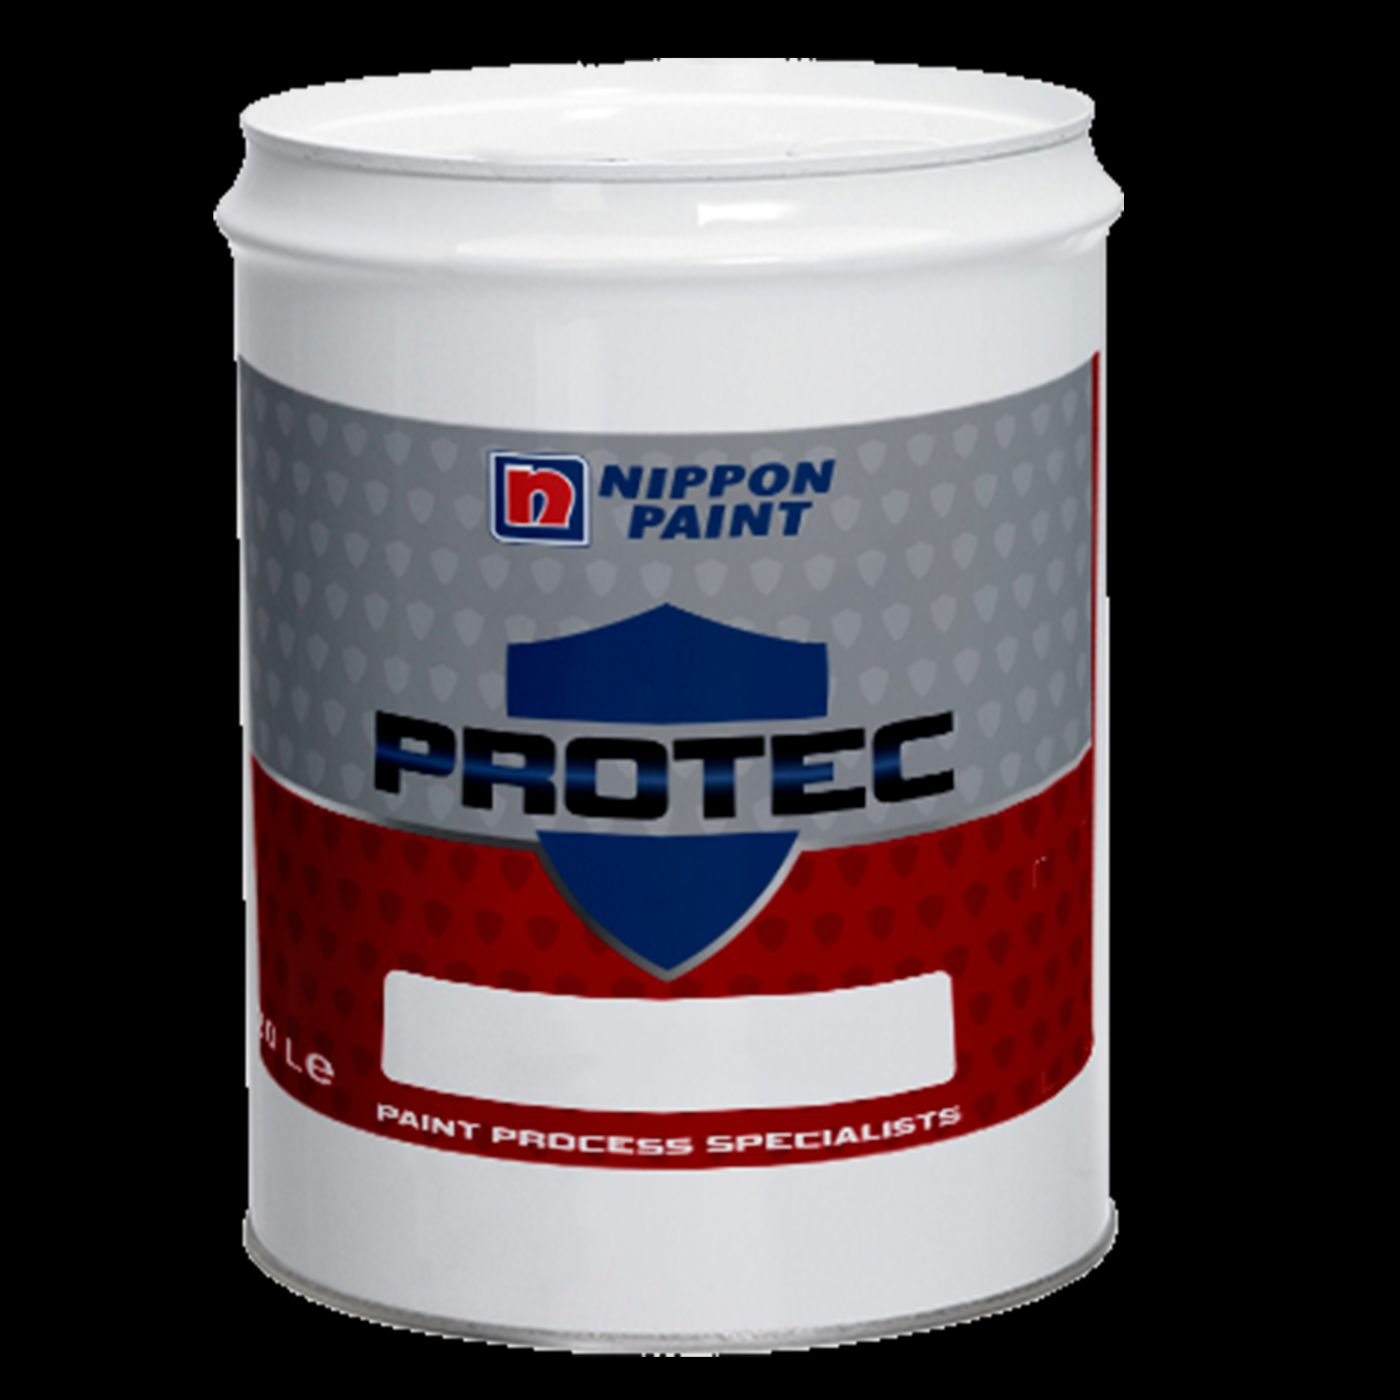 Nippon Paint expands industrial paints range with Protec launch